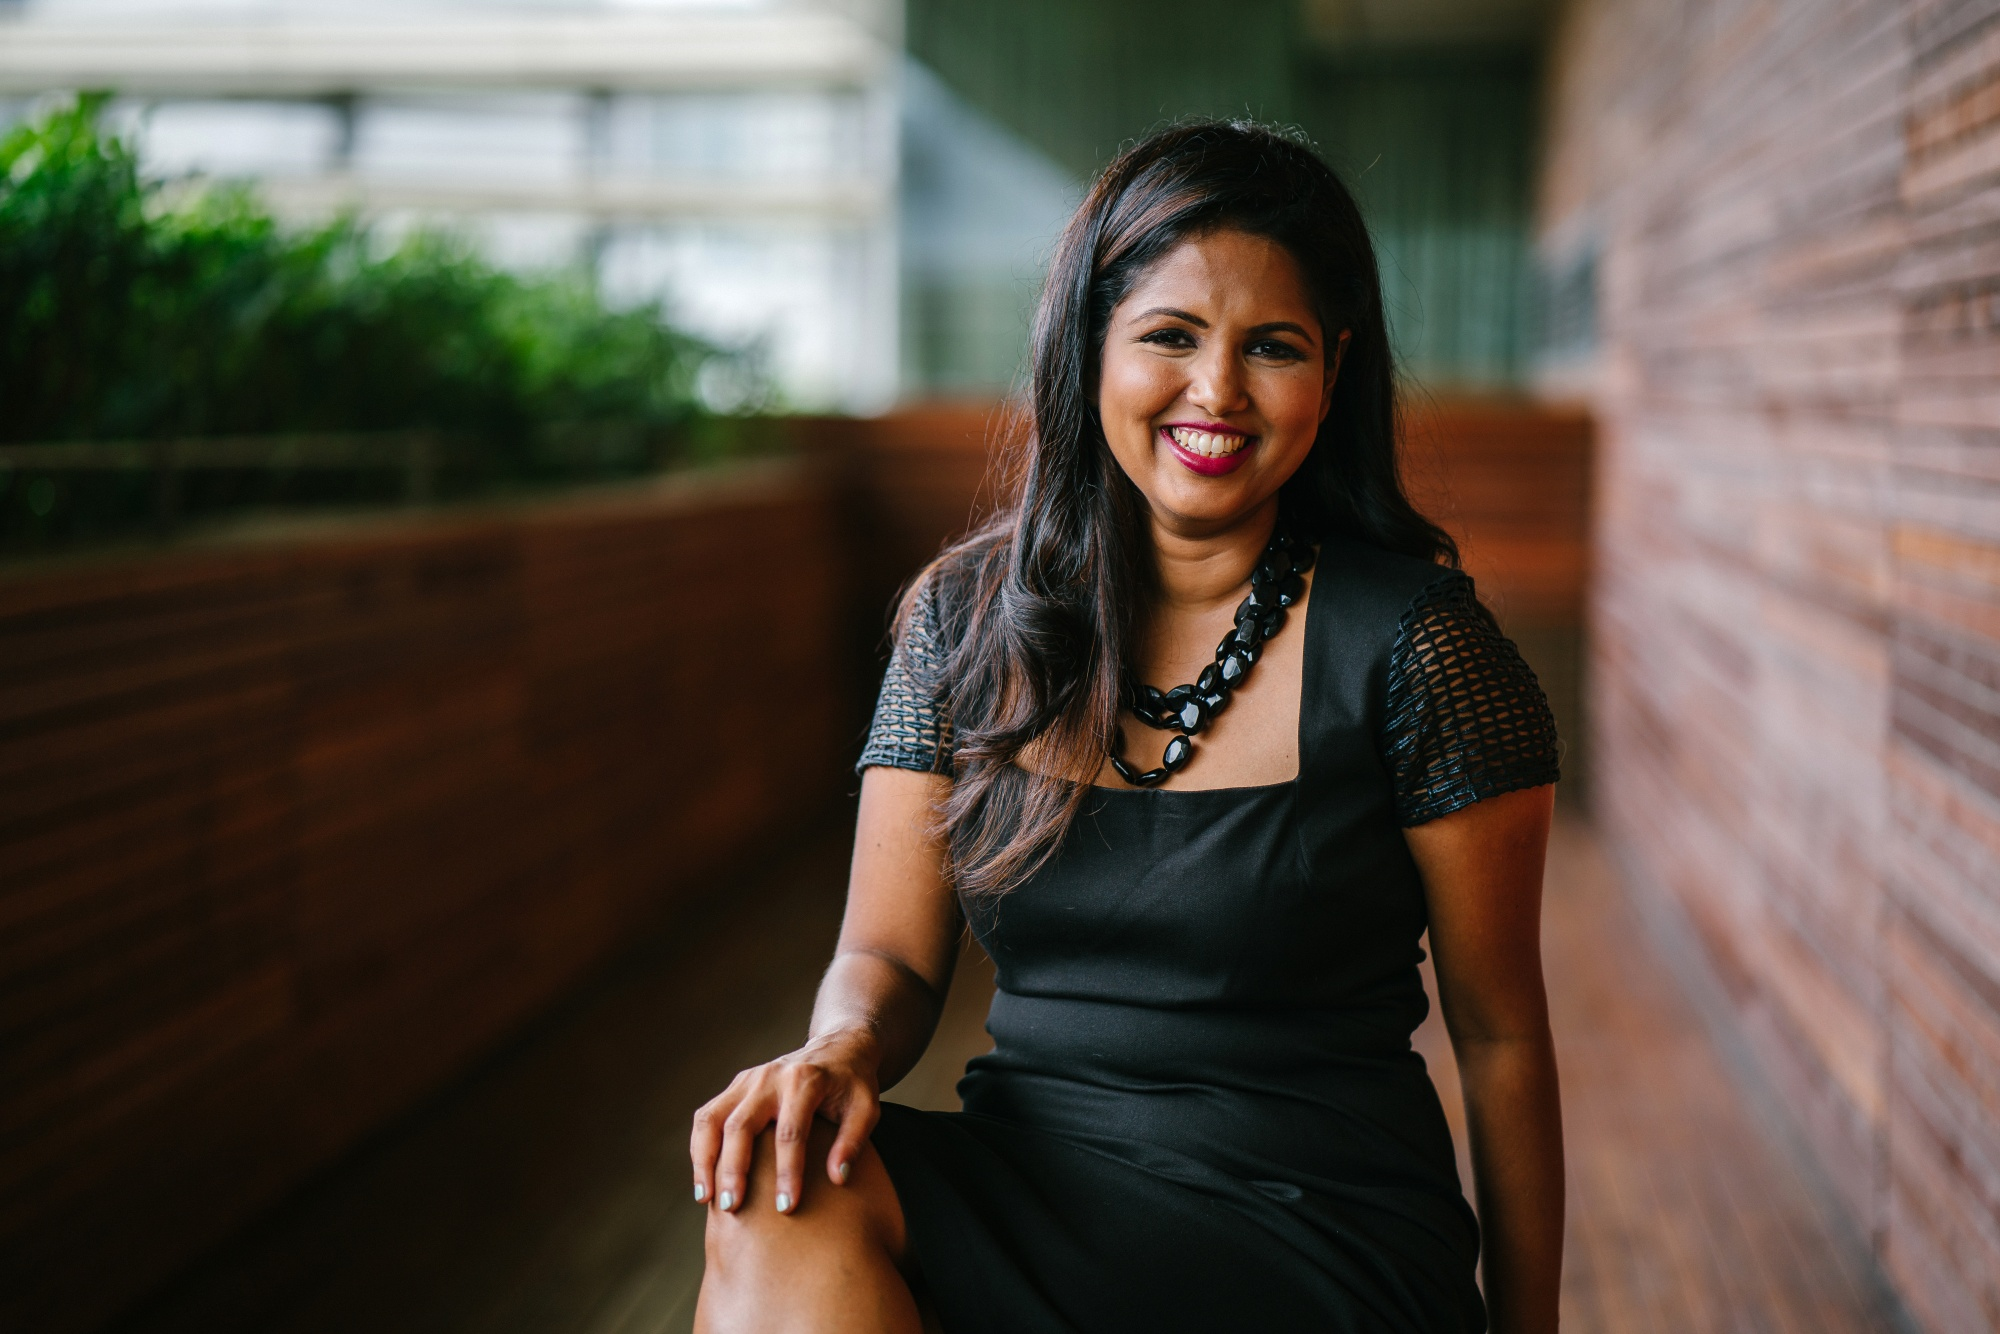 New Year's Resolutions, Long-haired Indian woman in black dress near a brick wall